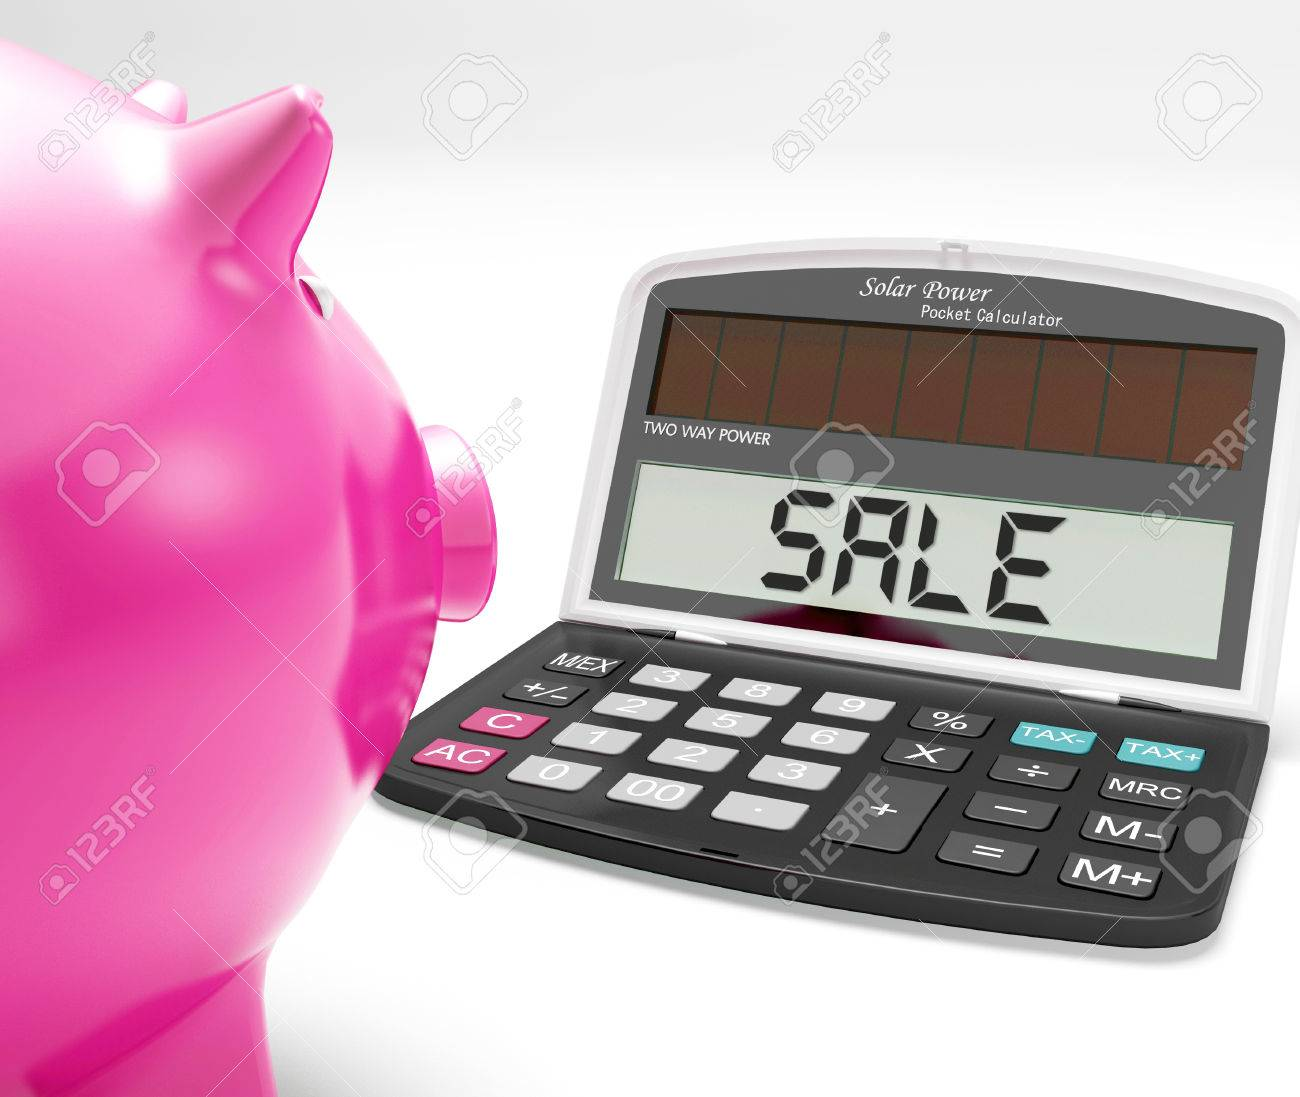 sale calculator showing price reduction or discounts stock photo